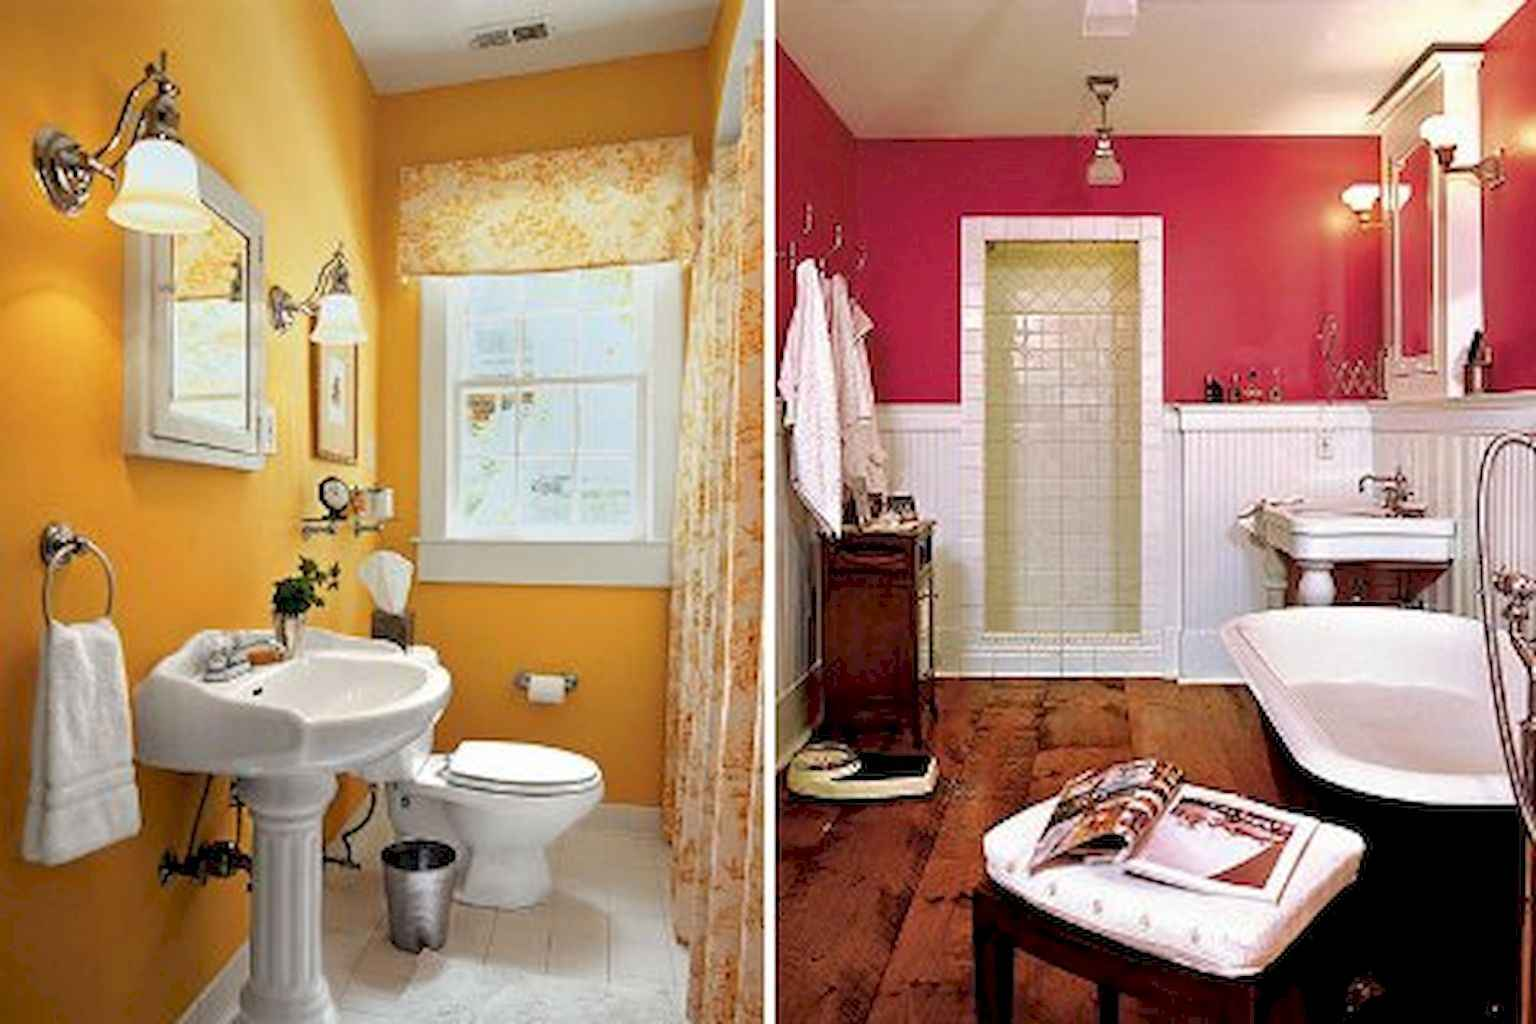 55 Cool and Relax Bathroom Decor Ideas (13)